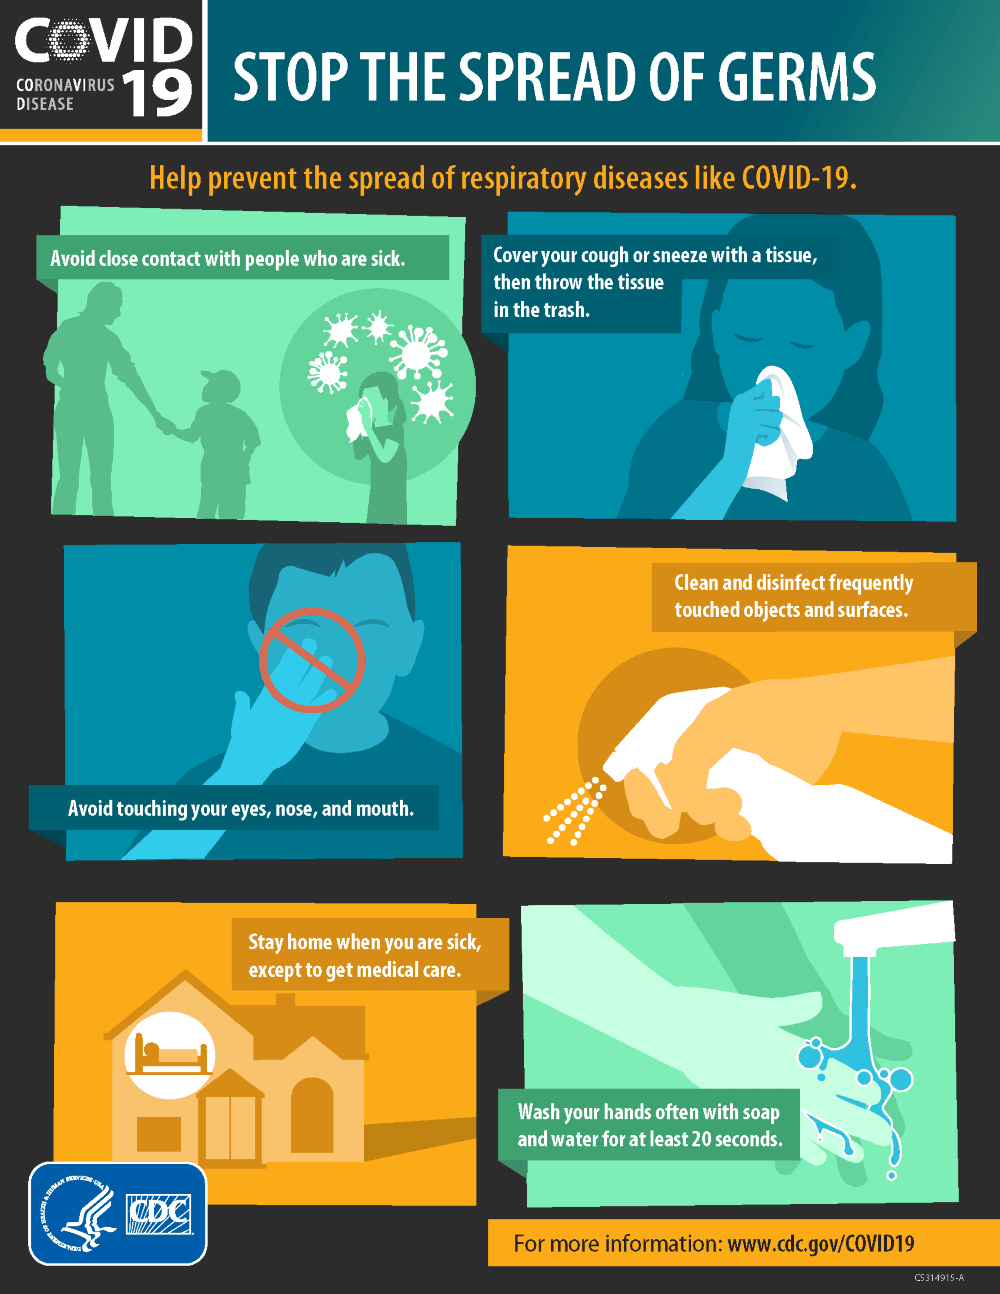 CDC stop-the-spread-of-germs covid19